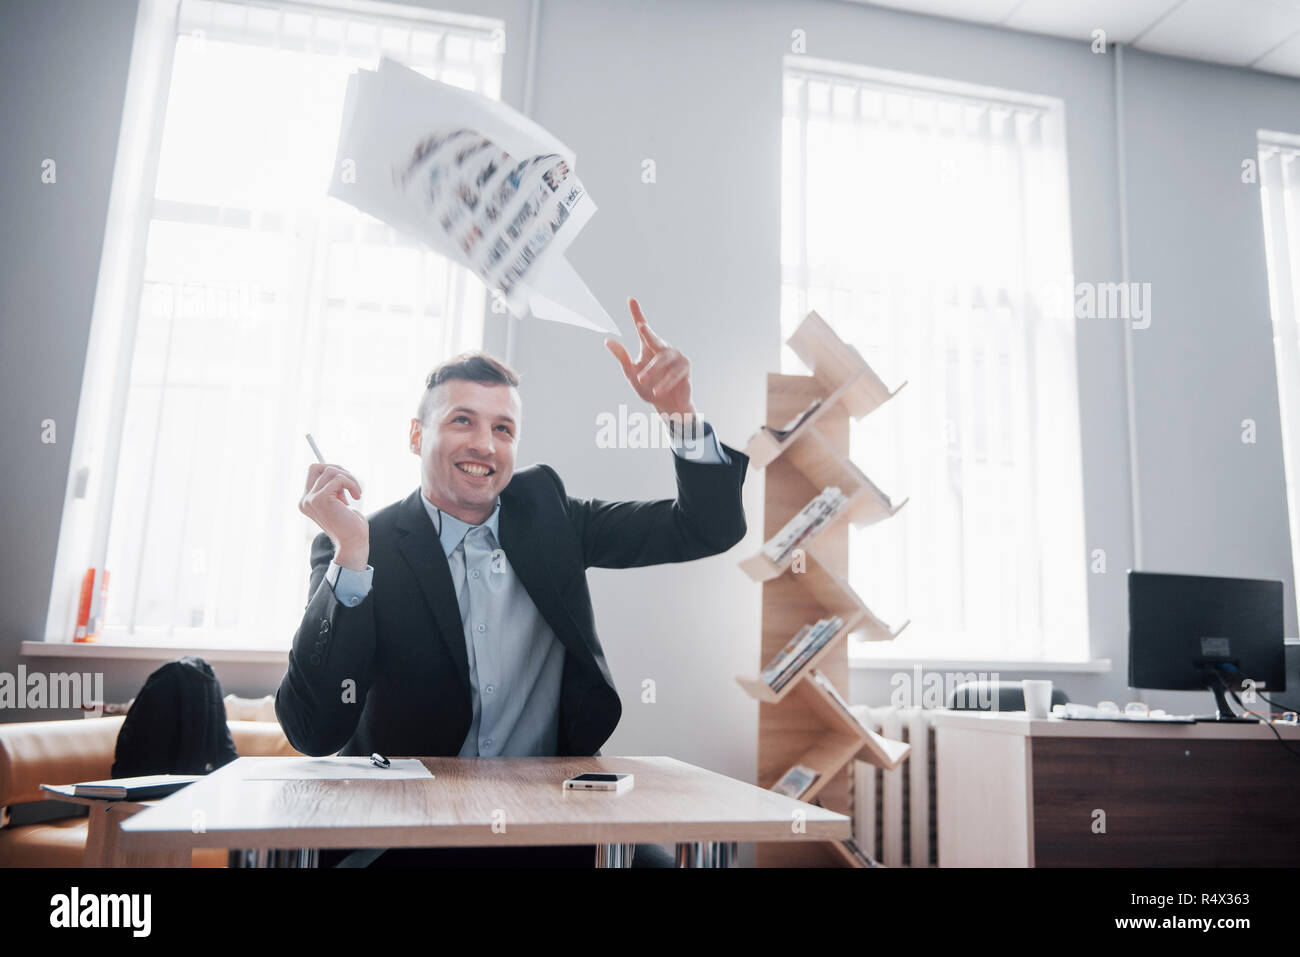 A handsome man sitting in the office and throwing papers on the air Stock Photo